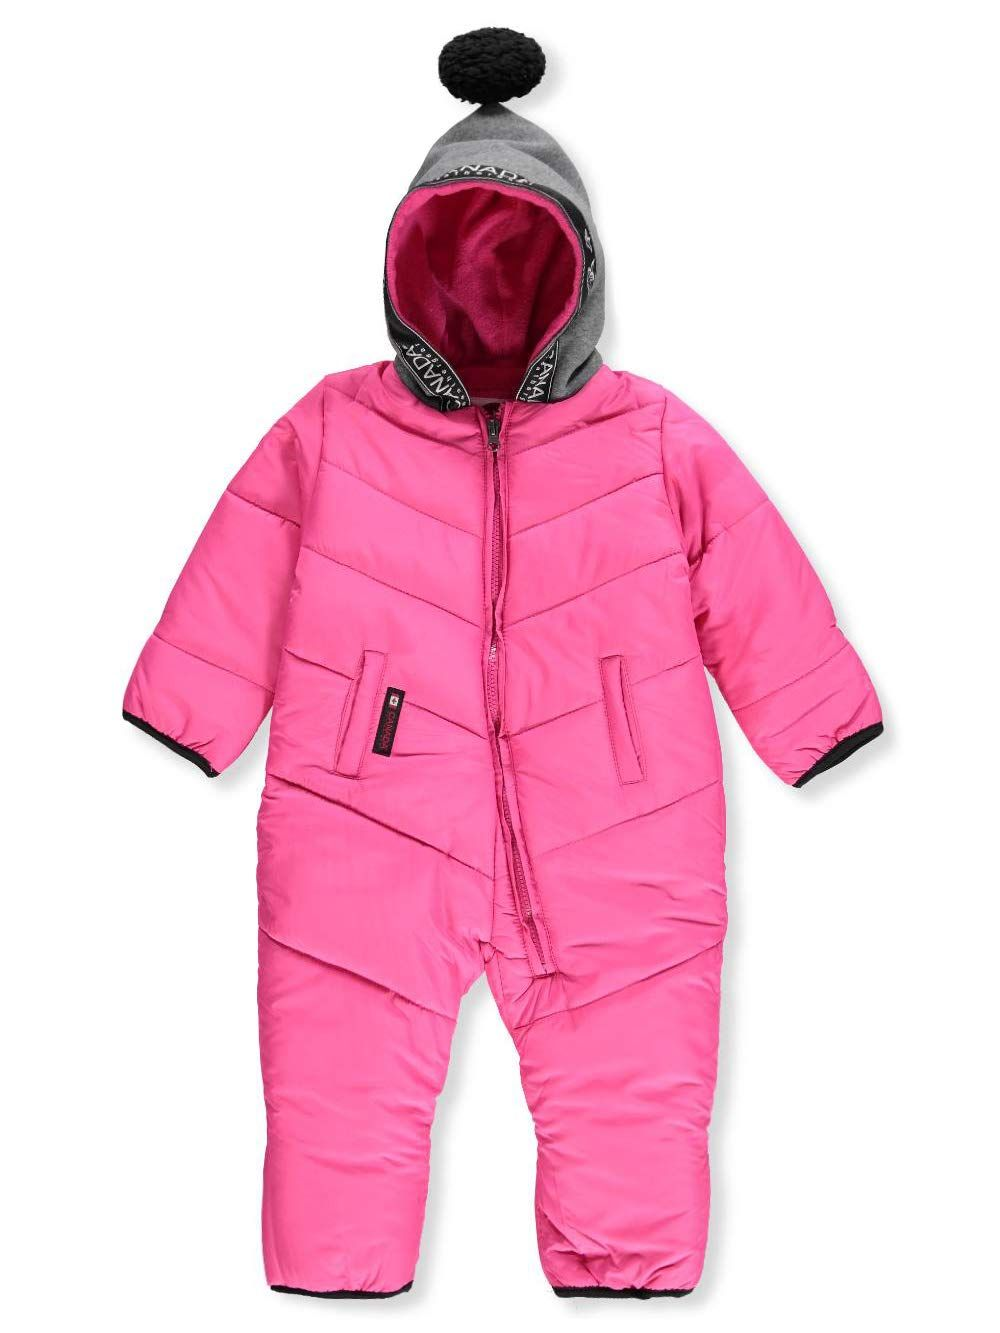 Canada Weather Gear Baby Girls 1piece Snowsuit Fuchsia 12 Months You Can Get More Details By Clicking On Cute Baby Girl Outfits Baby Girl Clothes Snow Suit